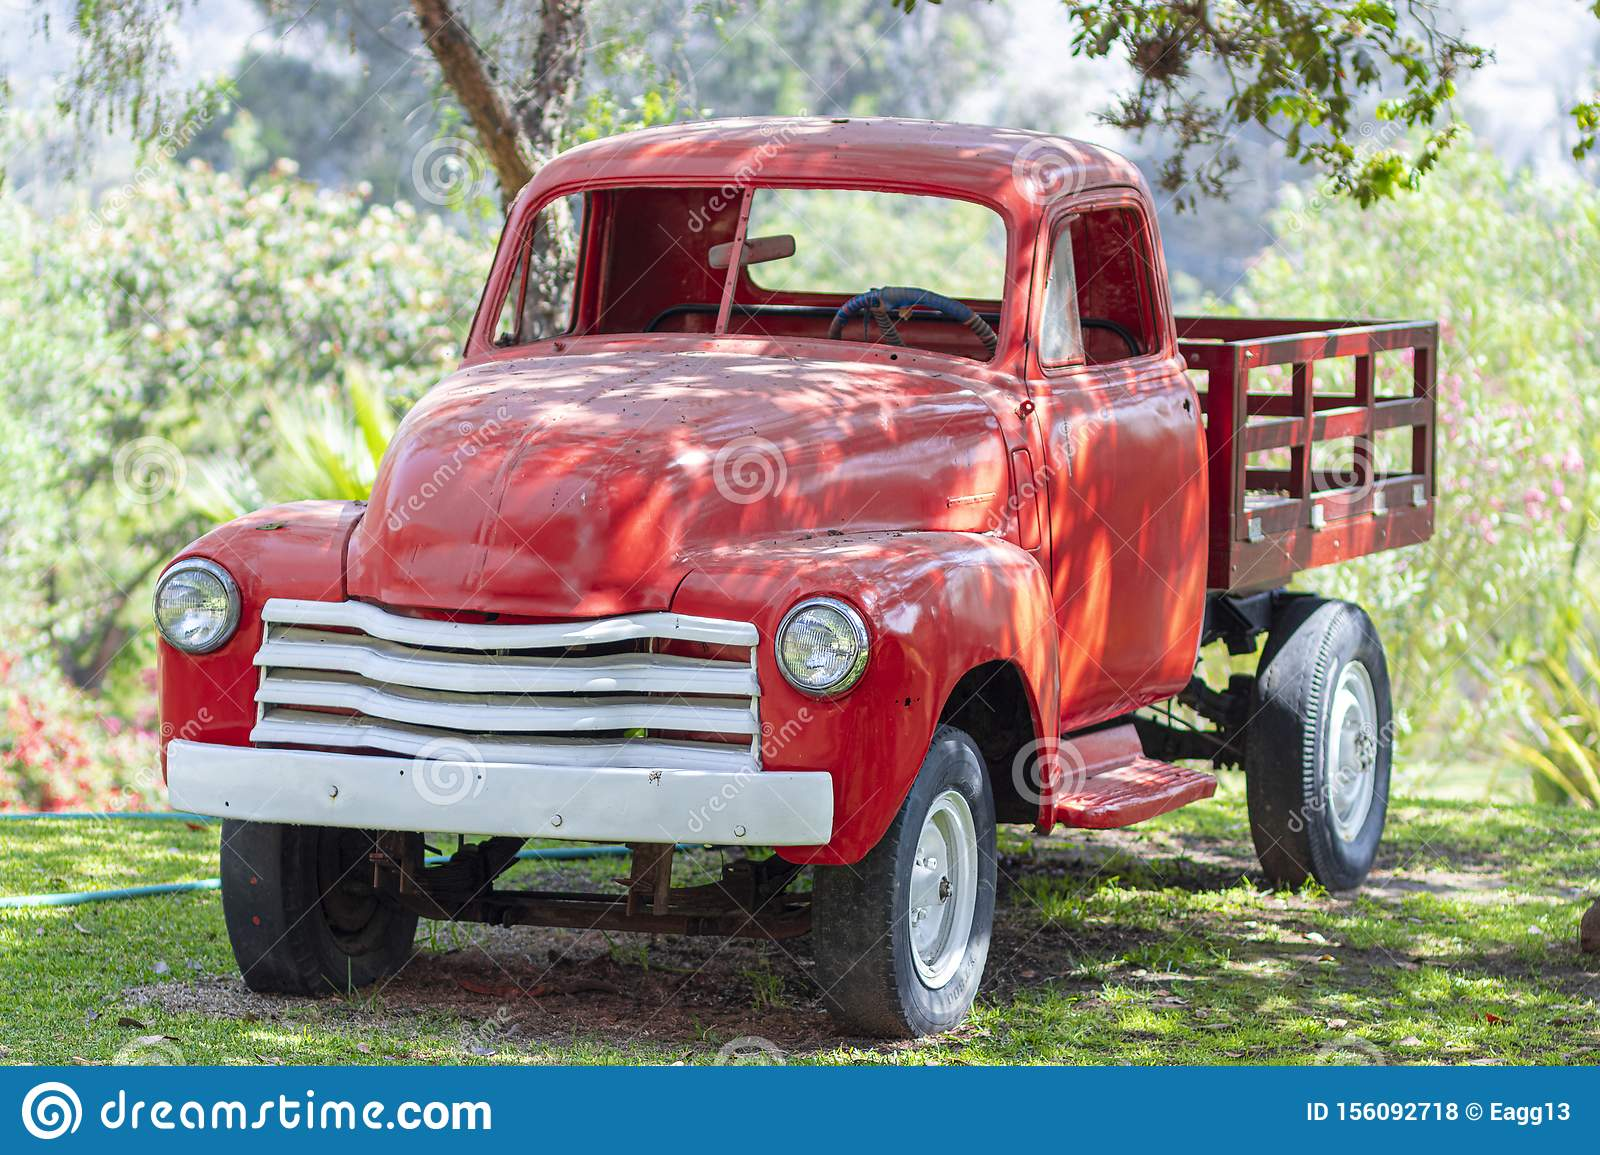 962 Old Red Farm Truck Photos Free Royalty Free Stock Photos From Dreamstime